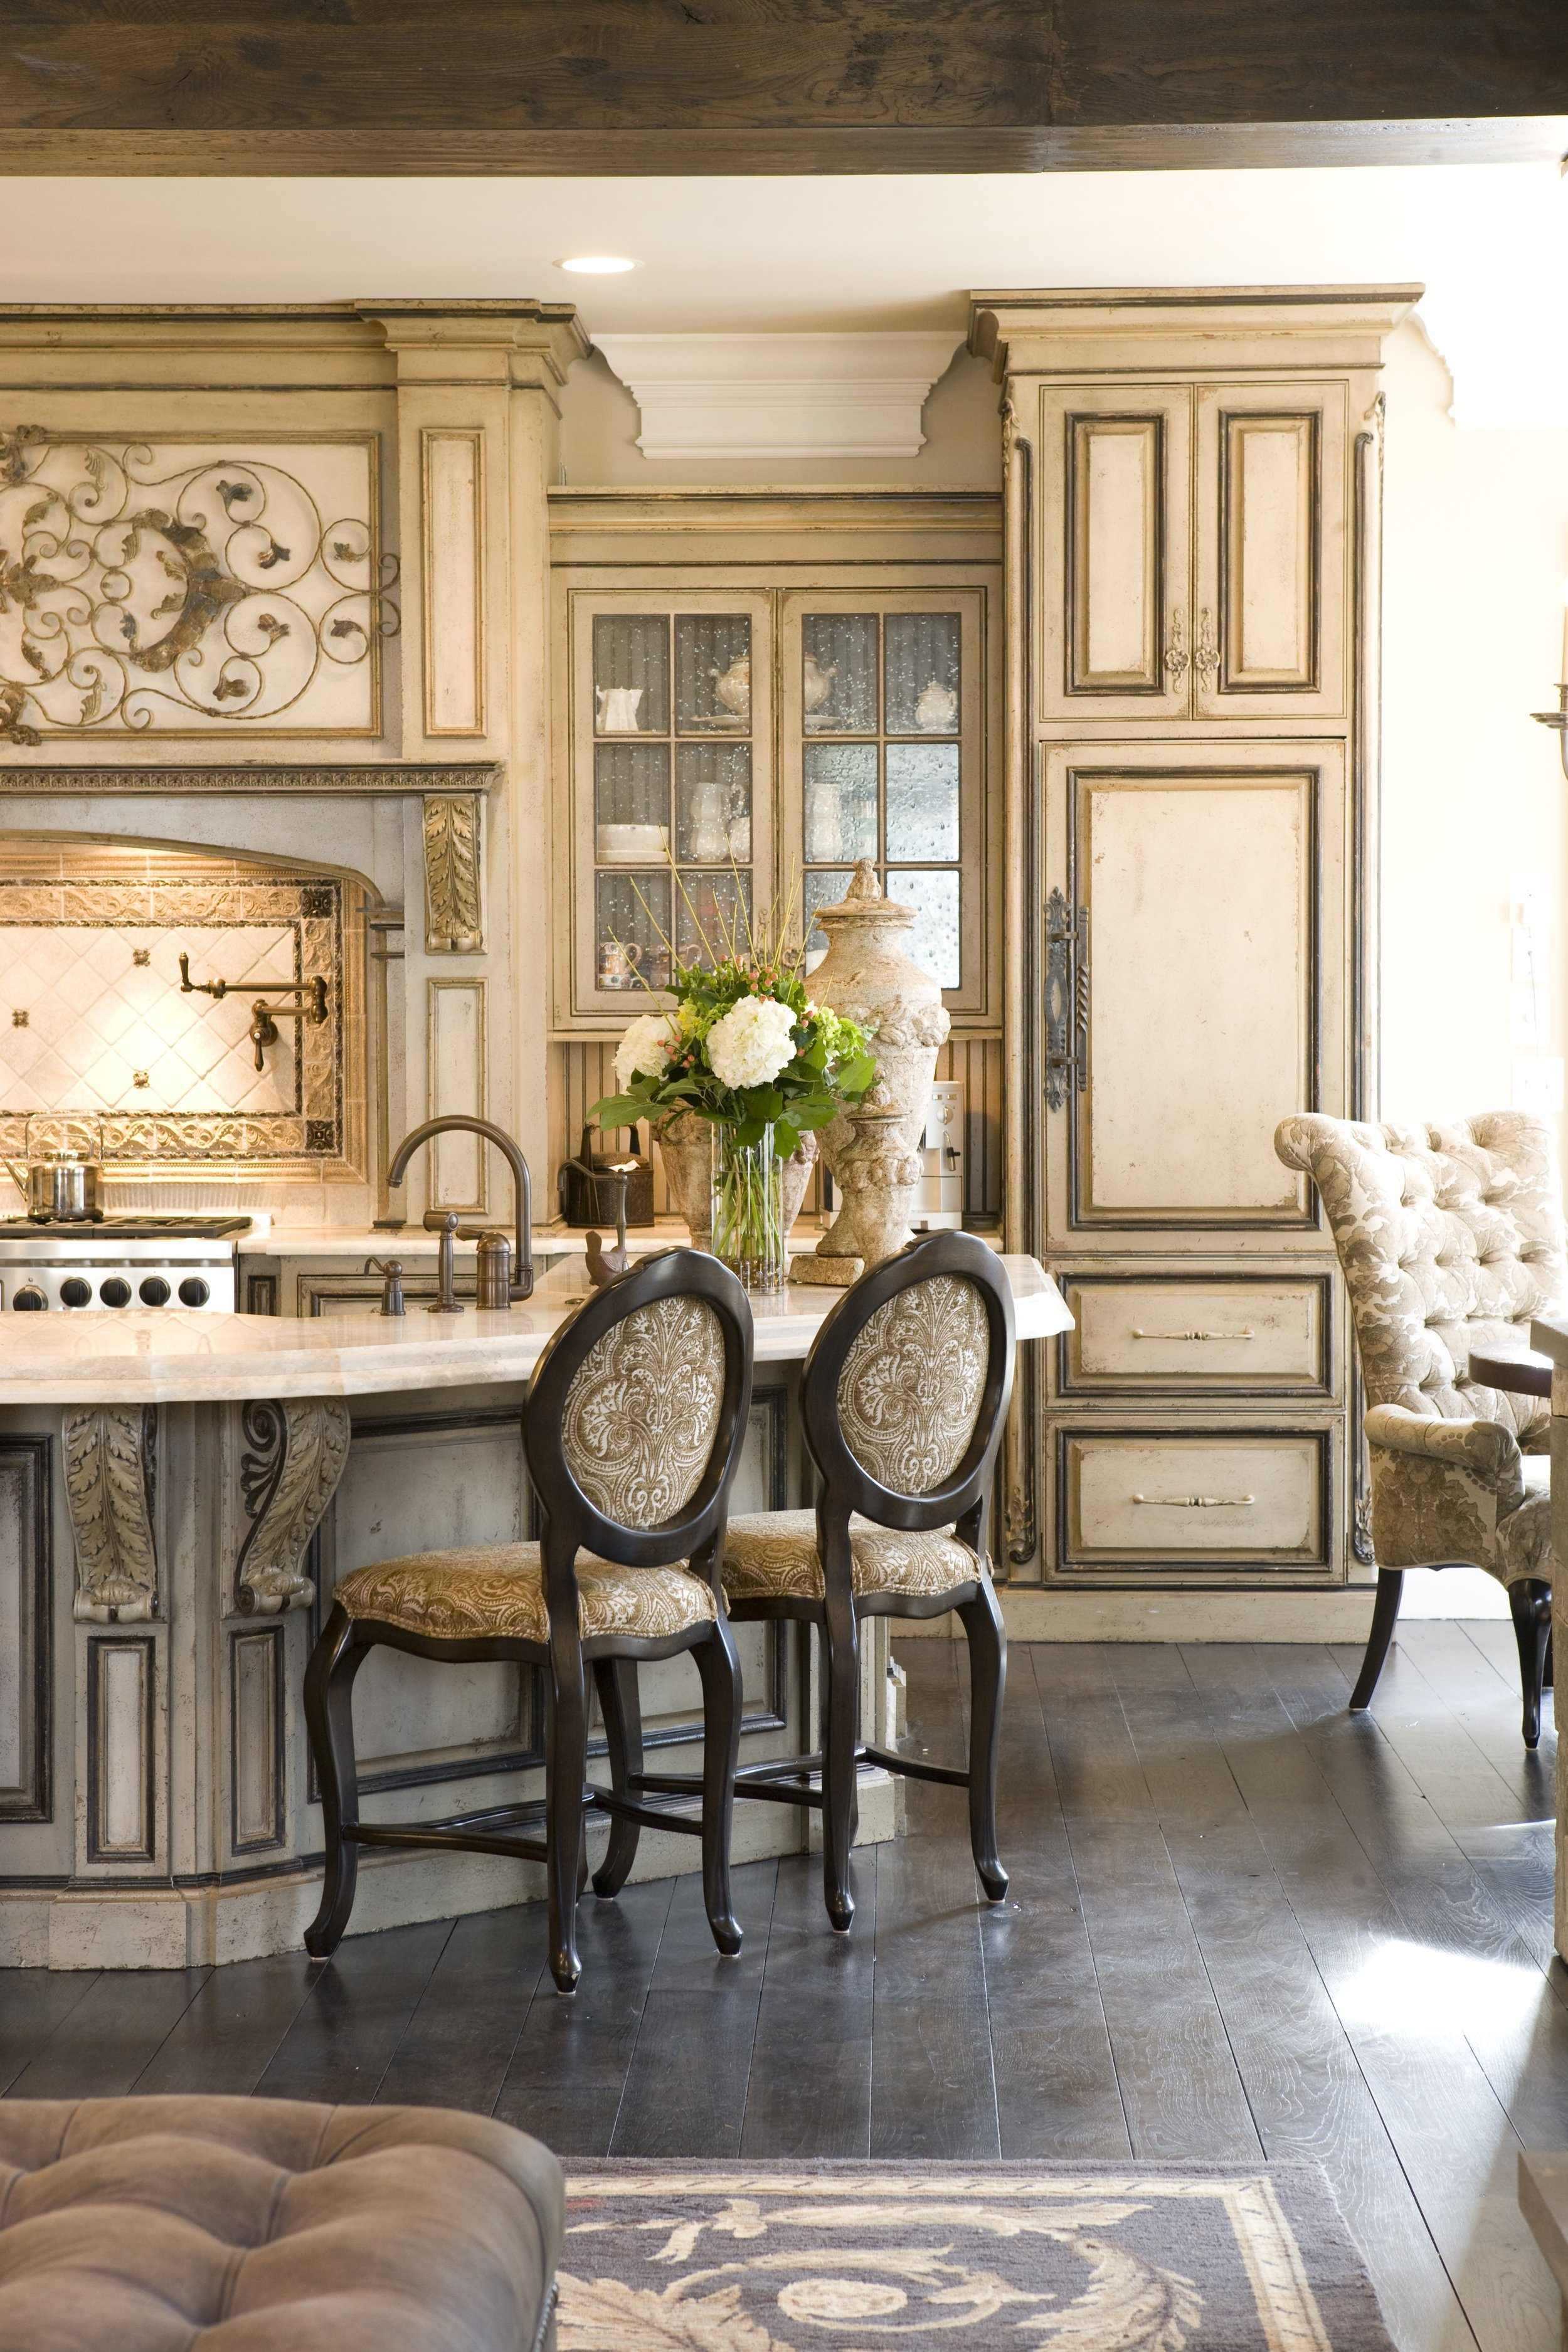 Habersham Casually Elegant Kitchen.jpg